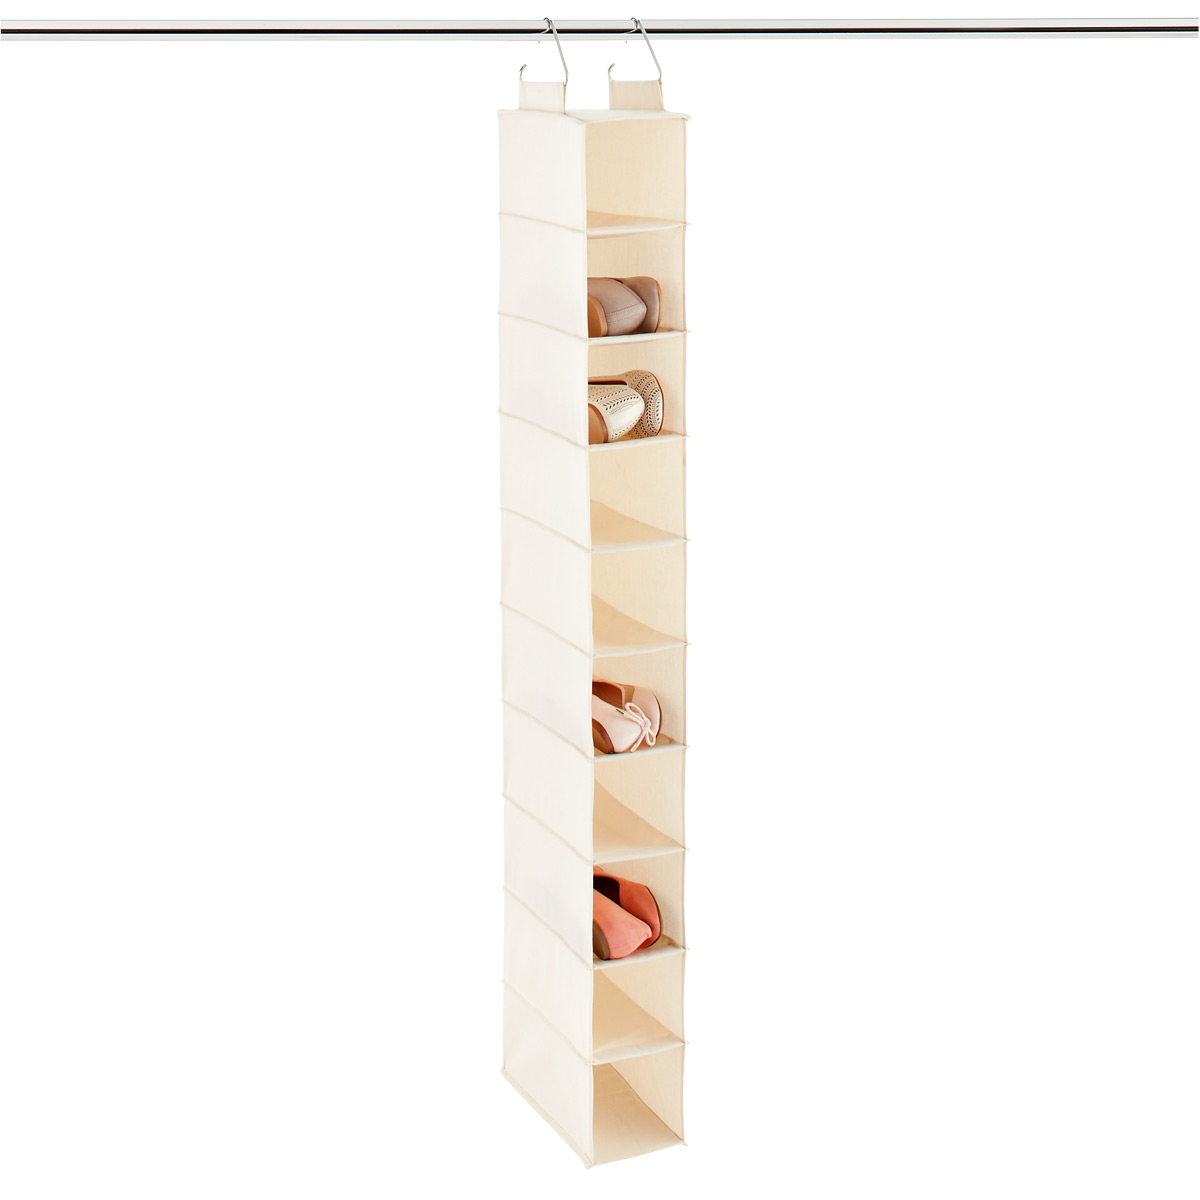 Master hanging shoe organizer 10-compartment canvas hanging shoe bag tylcxjb